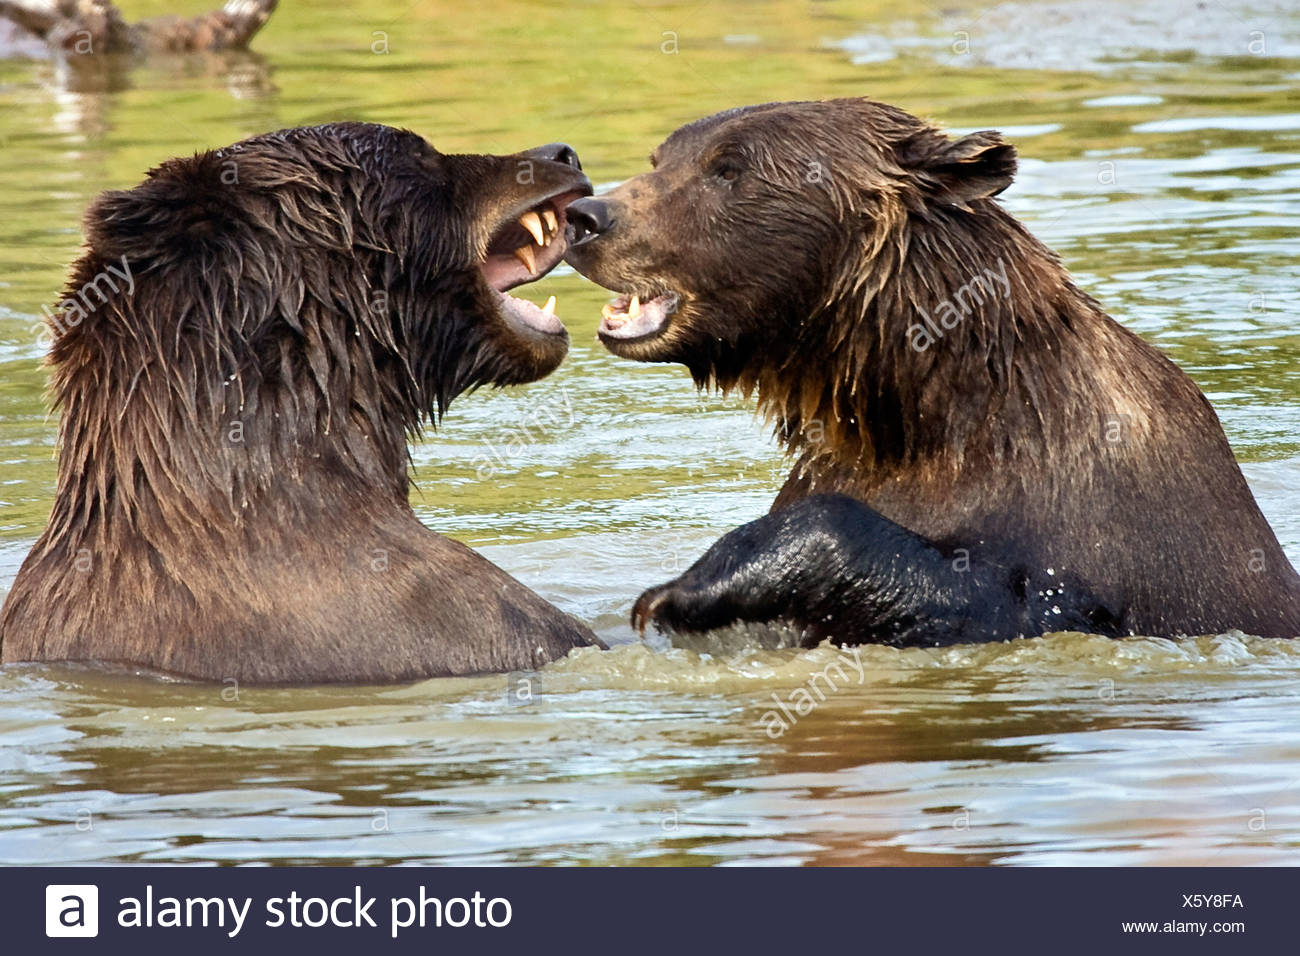 CAPTIVE Grizzly Bears play fighting at the Alaska Wildlife Conservation Center, Alaska - Stock Image